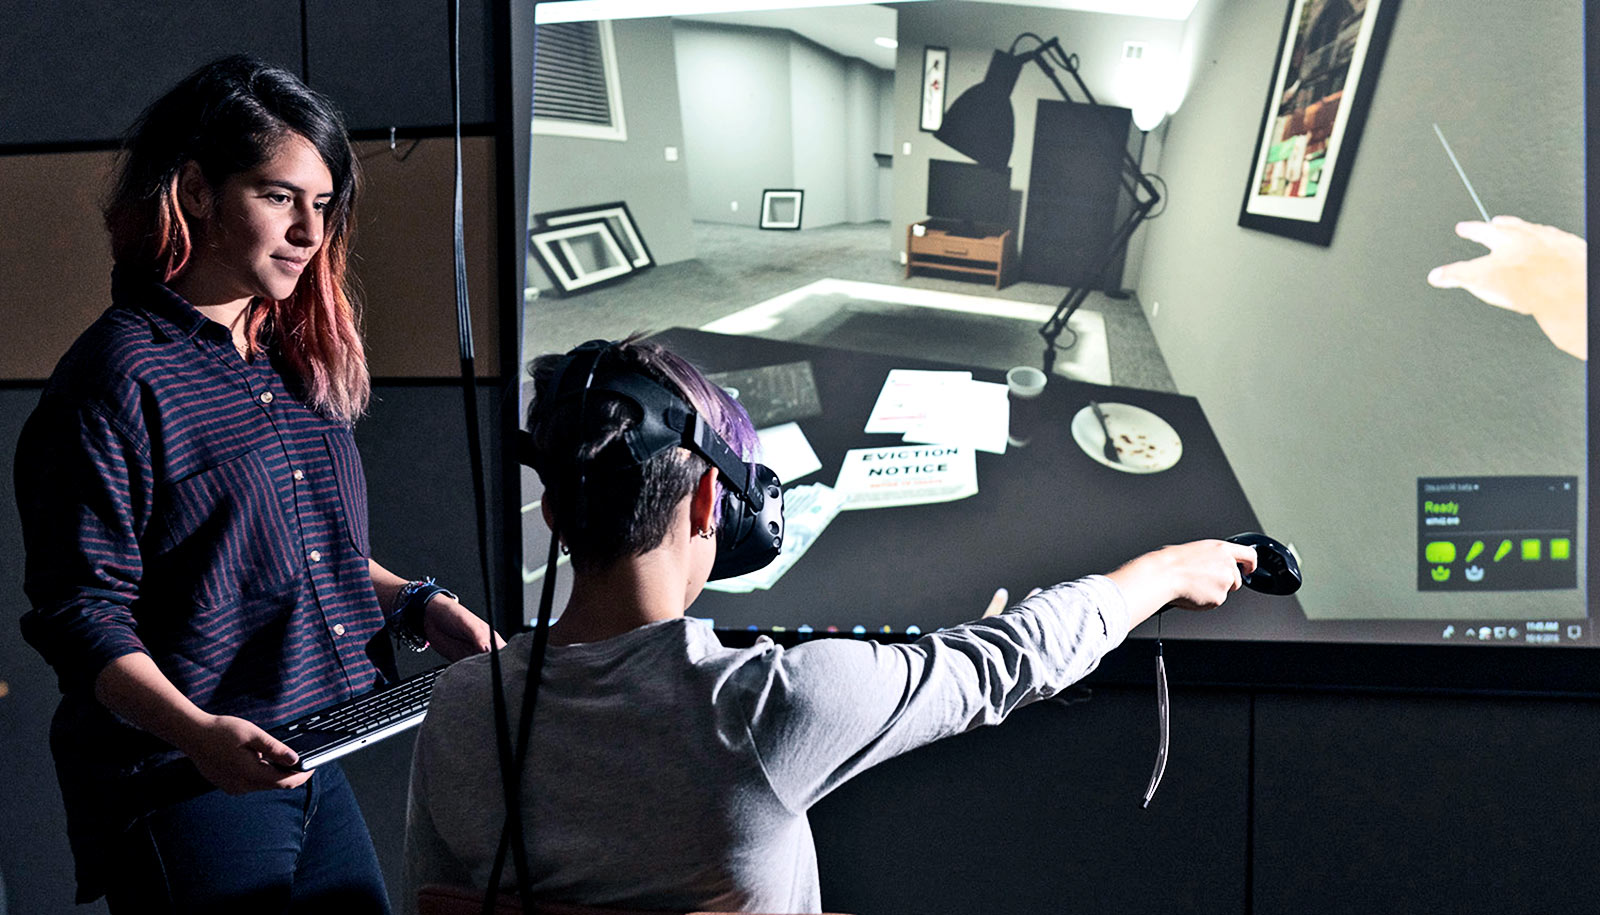 Virtual reality may boost empathy more than other media